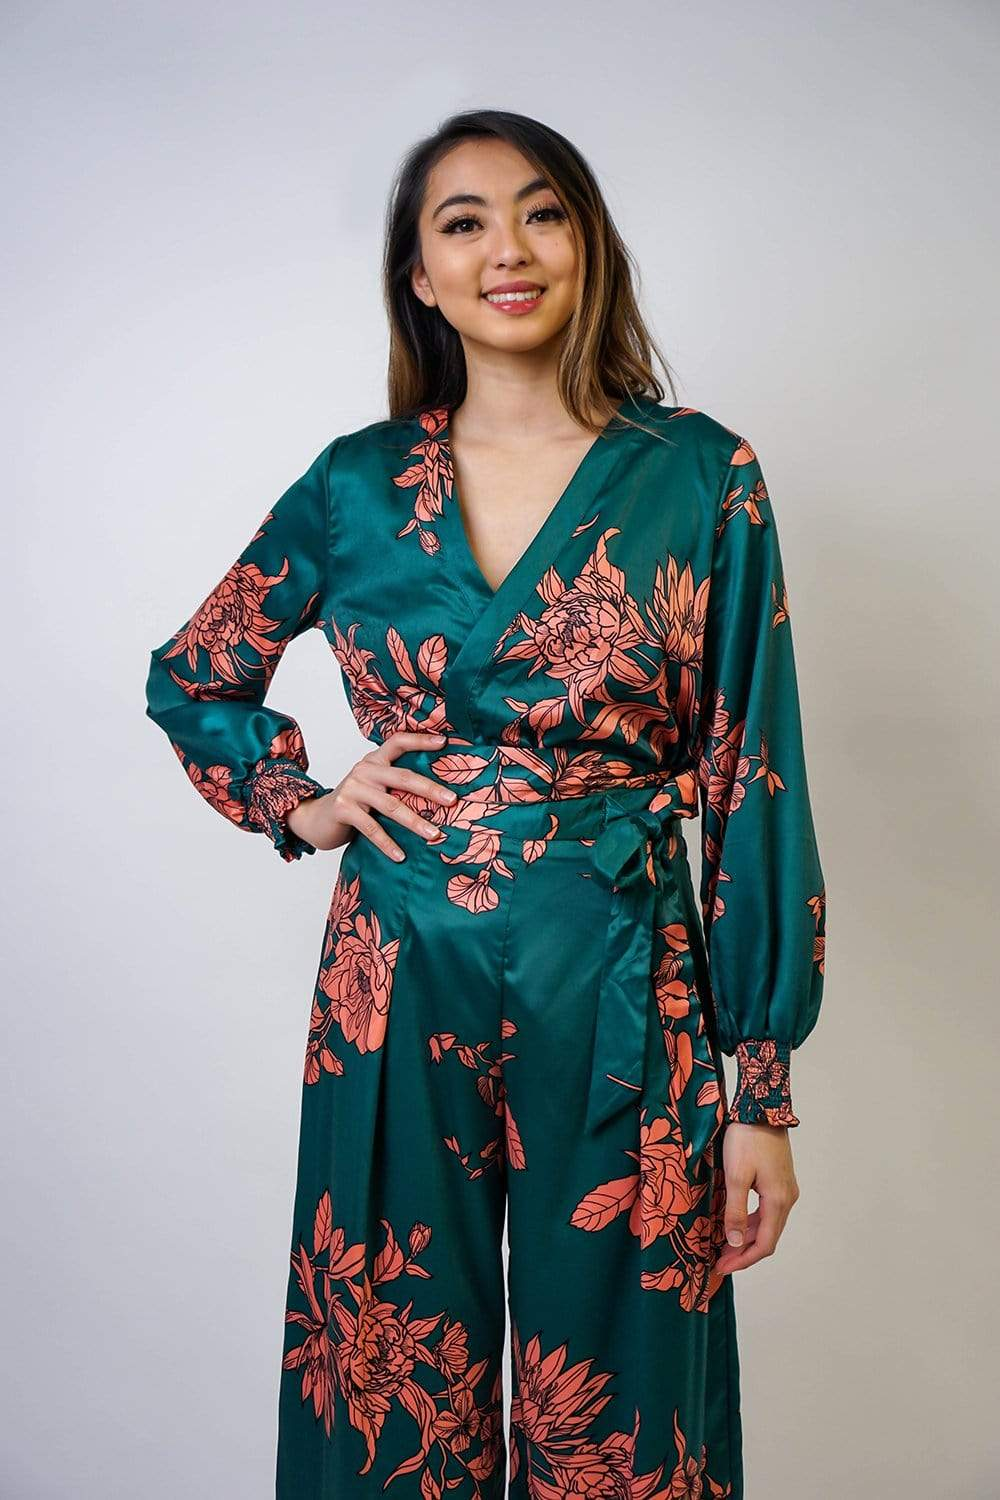 Wrap kimono in green and orange dragon floral satin two-piece. V-neck with  a coordinating self-tie belt to cinch the waist. These are made for a relaxed fit and to give you a slouchy silhouette. Stretchy cuff sleeves. Try yours with the matching wide-leg pants to wear the two piece set.